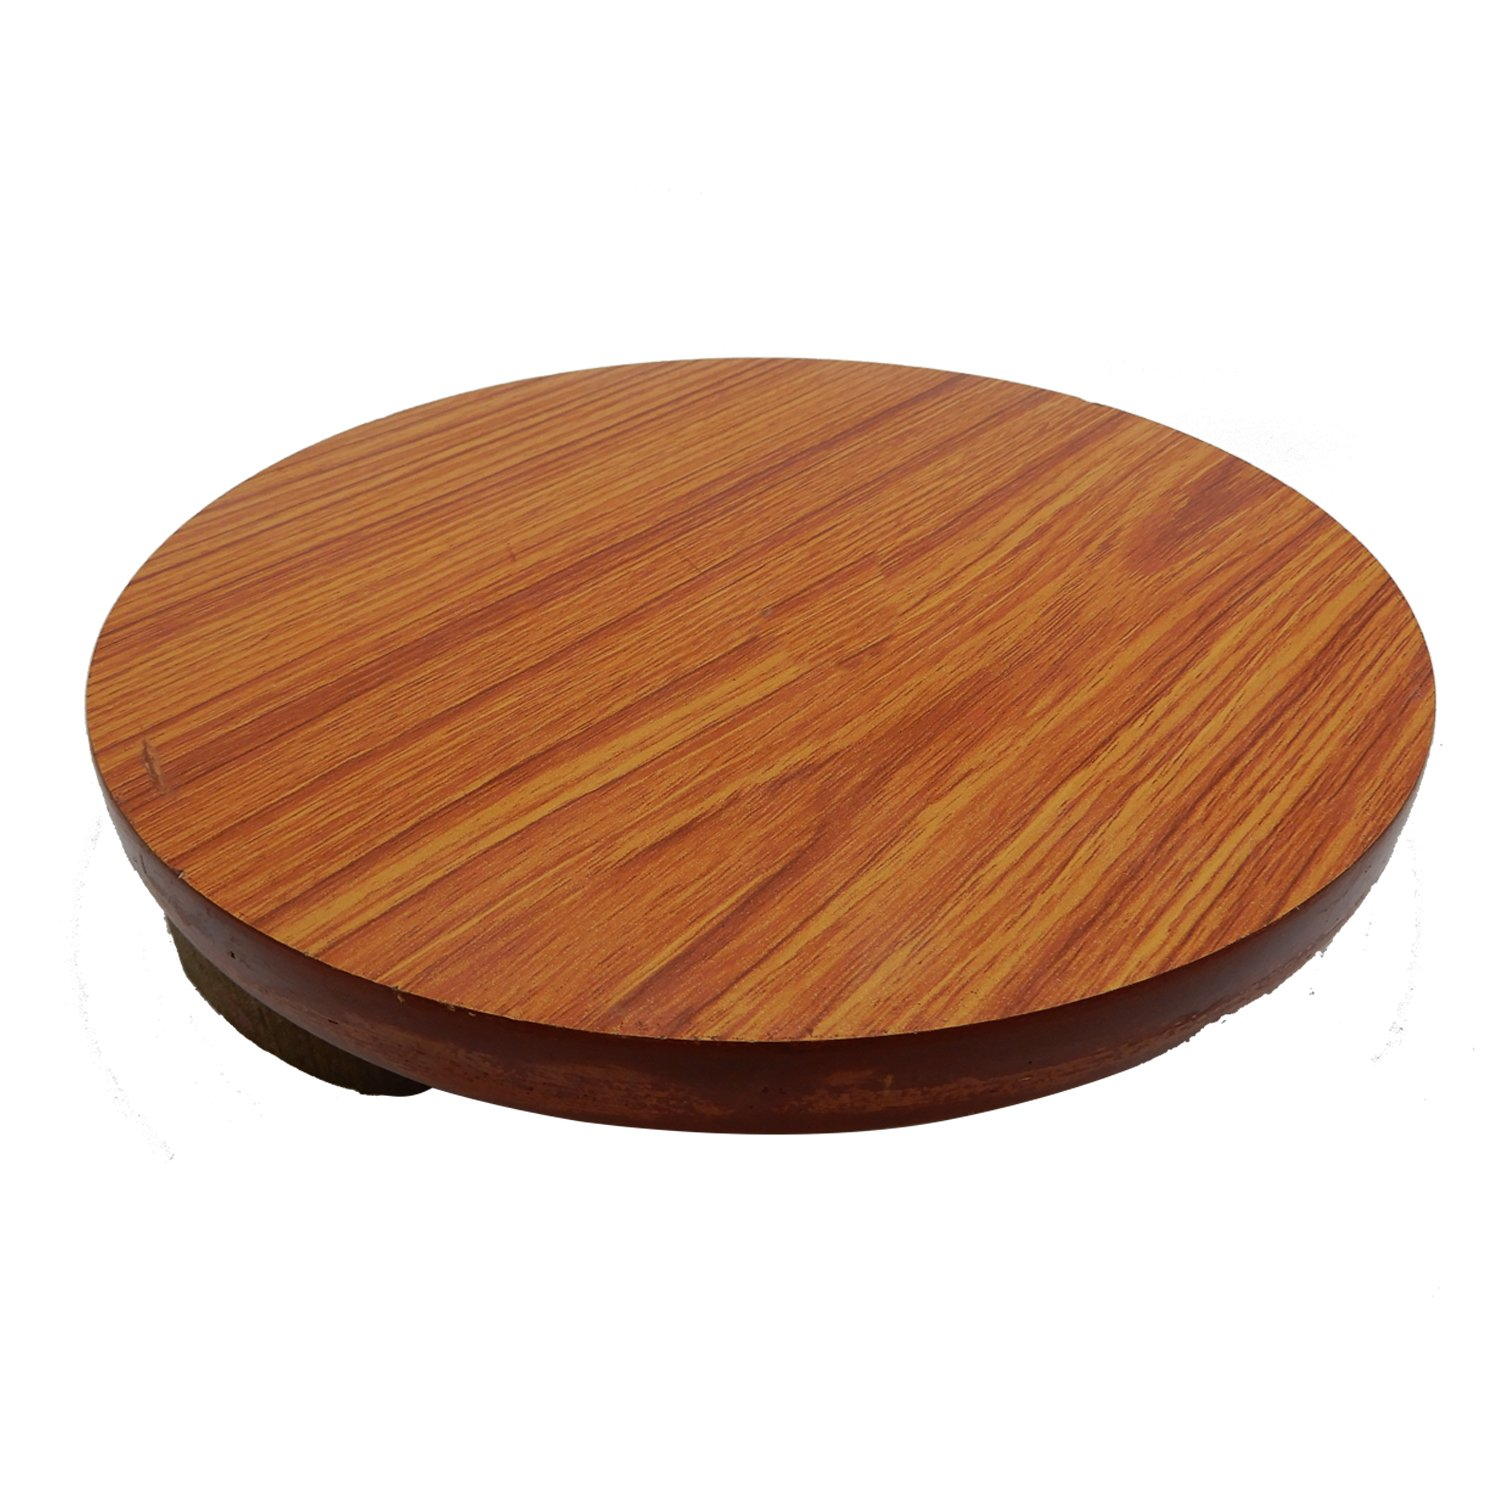 Wooden Board Perfect for Making Chapati Kitchen Accessory Roti Maker Serving Board Brown Color Size 9 X 9 Inch